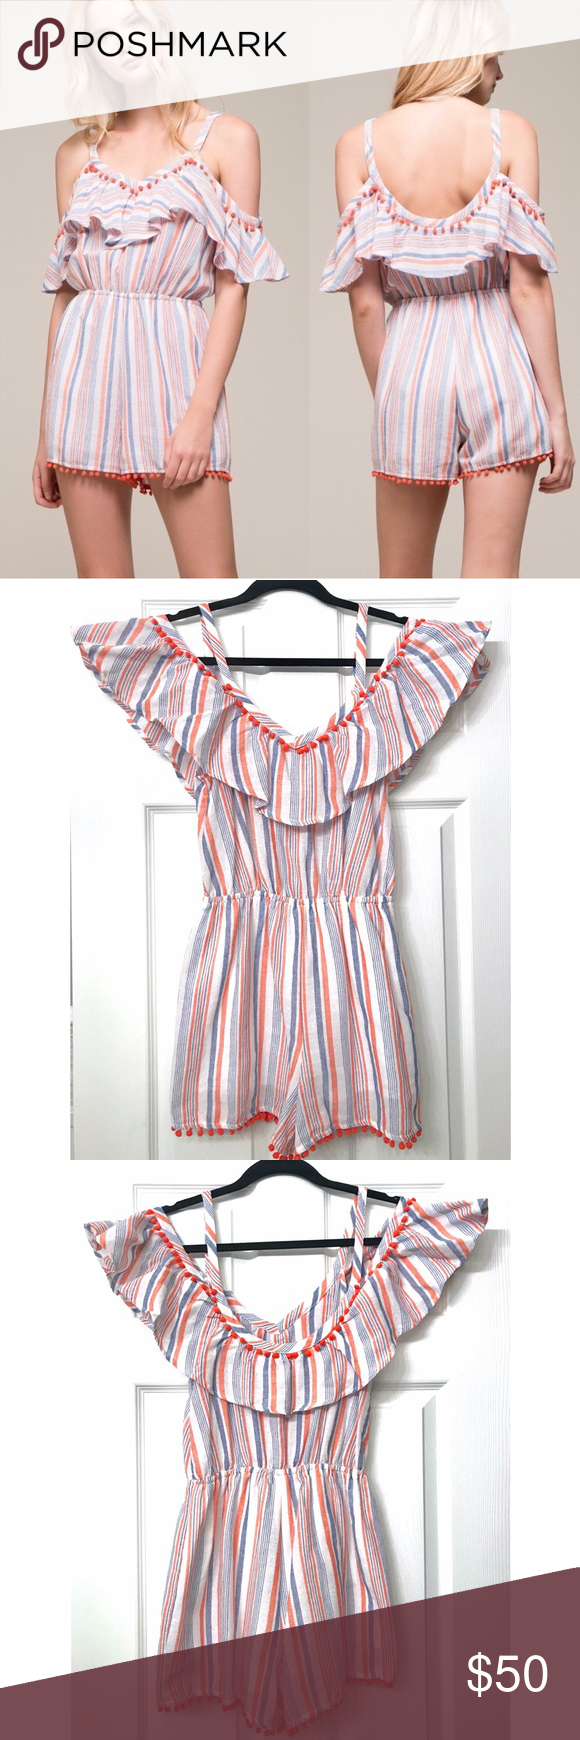 "Striped Pom Pom Off-Shoulder Romper EUC, worn once. Comes from a smoke-free, pet-free home. Inseam is 2"" & armpit to bottom is 20"".  It IS lined as you can see in the pictures.   Looks like Urban Outfitters, Express, or Forever 21/H&M.  Perfect for a beach vacation, honeymoon, night out, you name it! Moon River Pants Jumpsuits & Rompers #beachhoneymoonclothes"